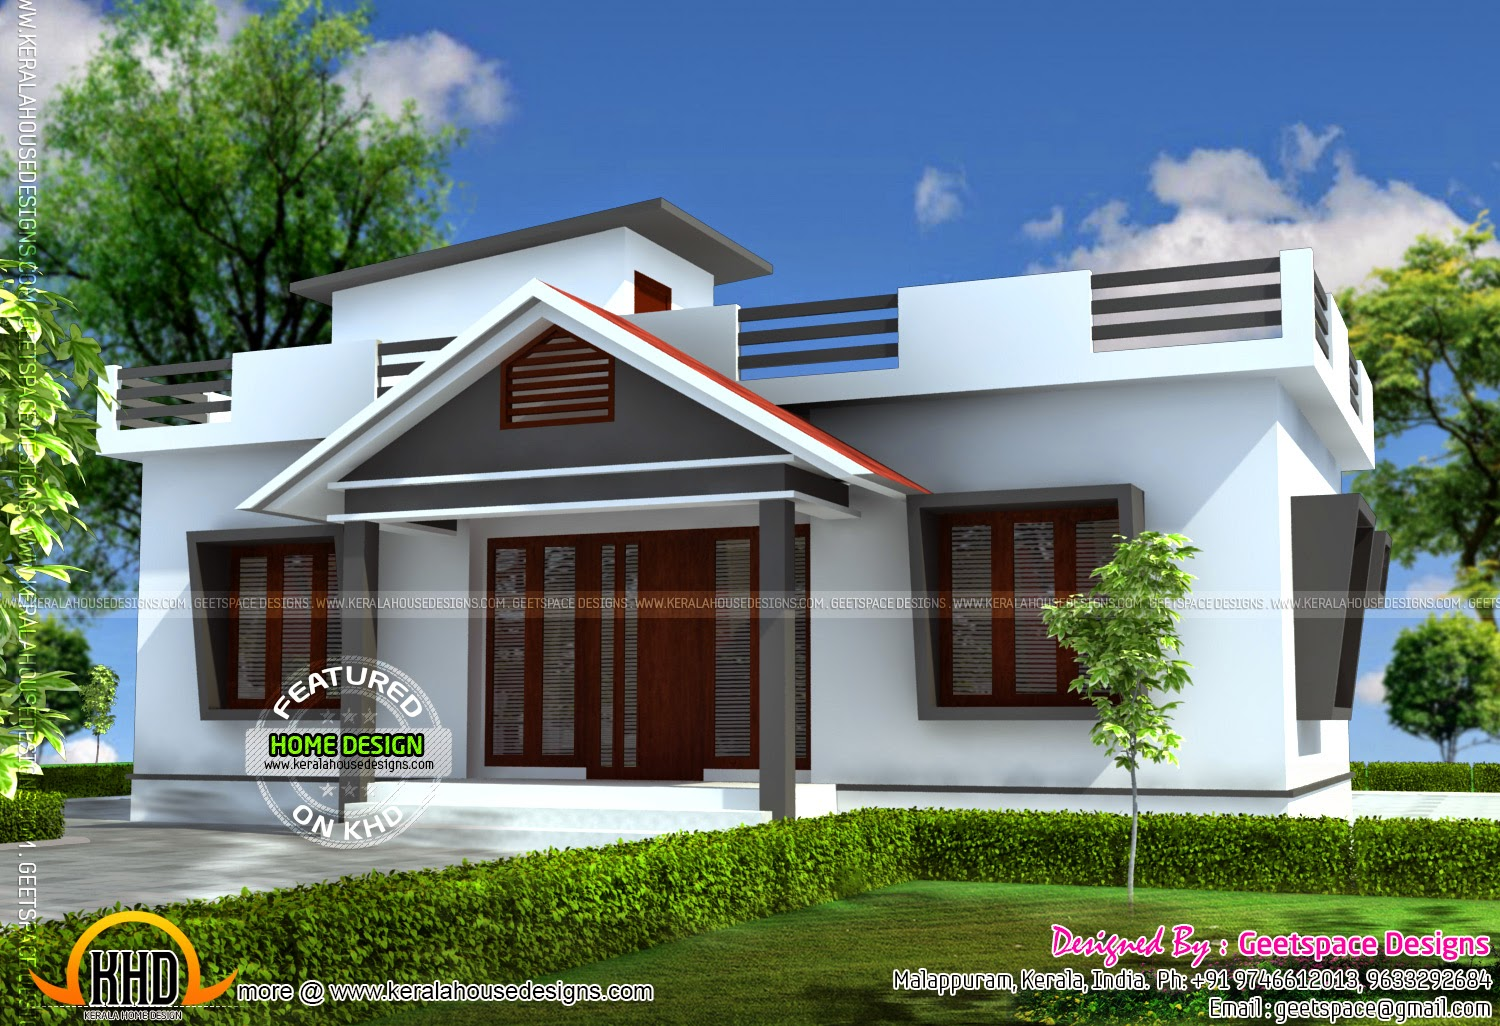 Small budget home plans design kerala joy studio design for Small budget house plans in kerala